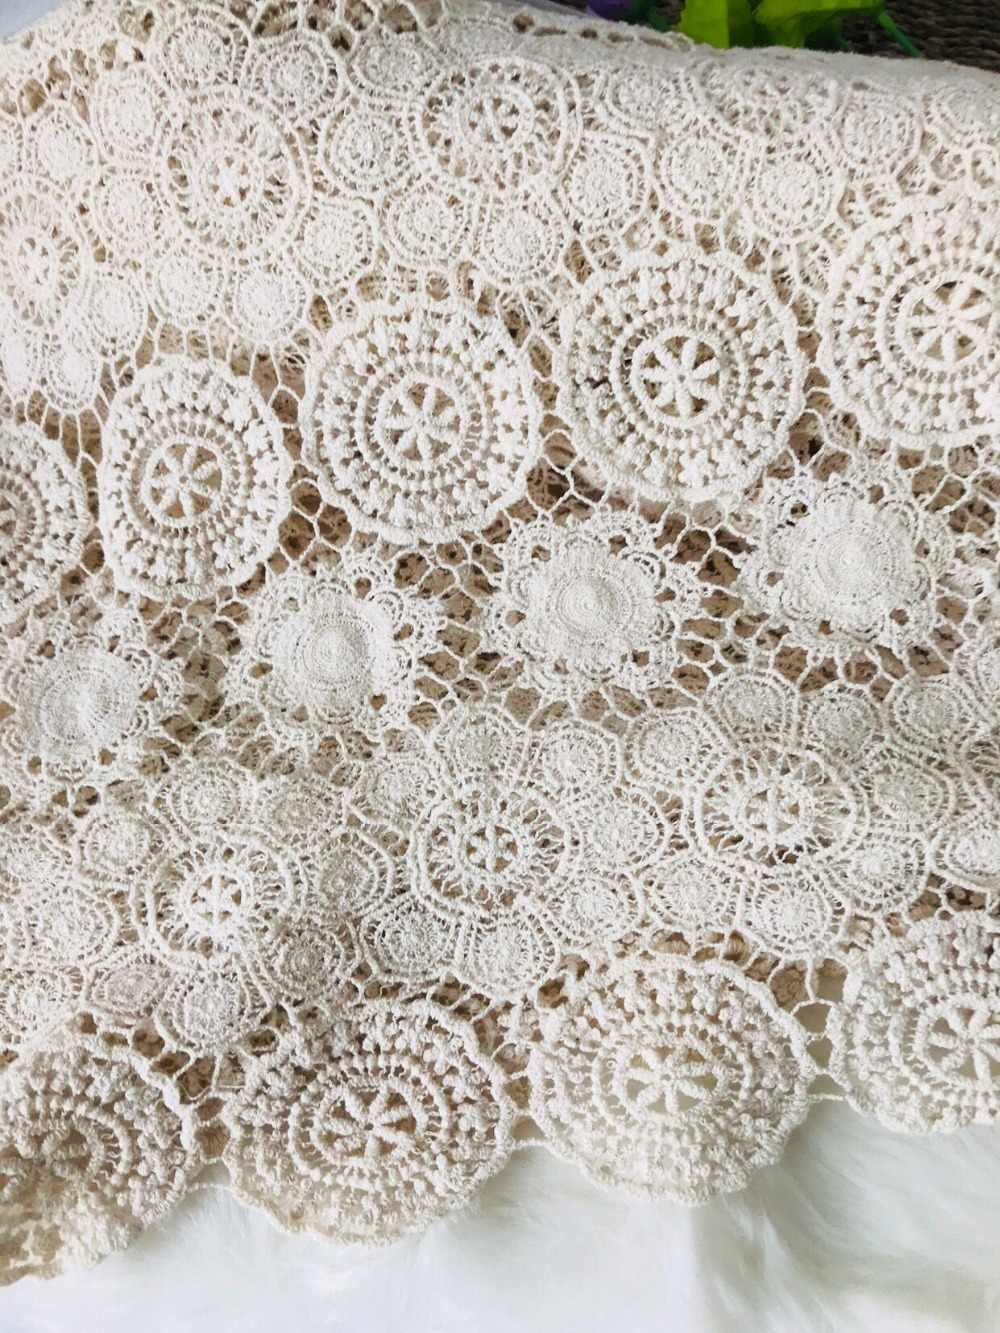 Craft Supplies Vintage Fabric Cotton Crochet Craft Lace Fabric Sewing and Needlecraft.